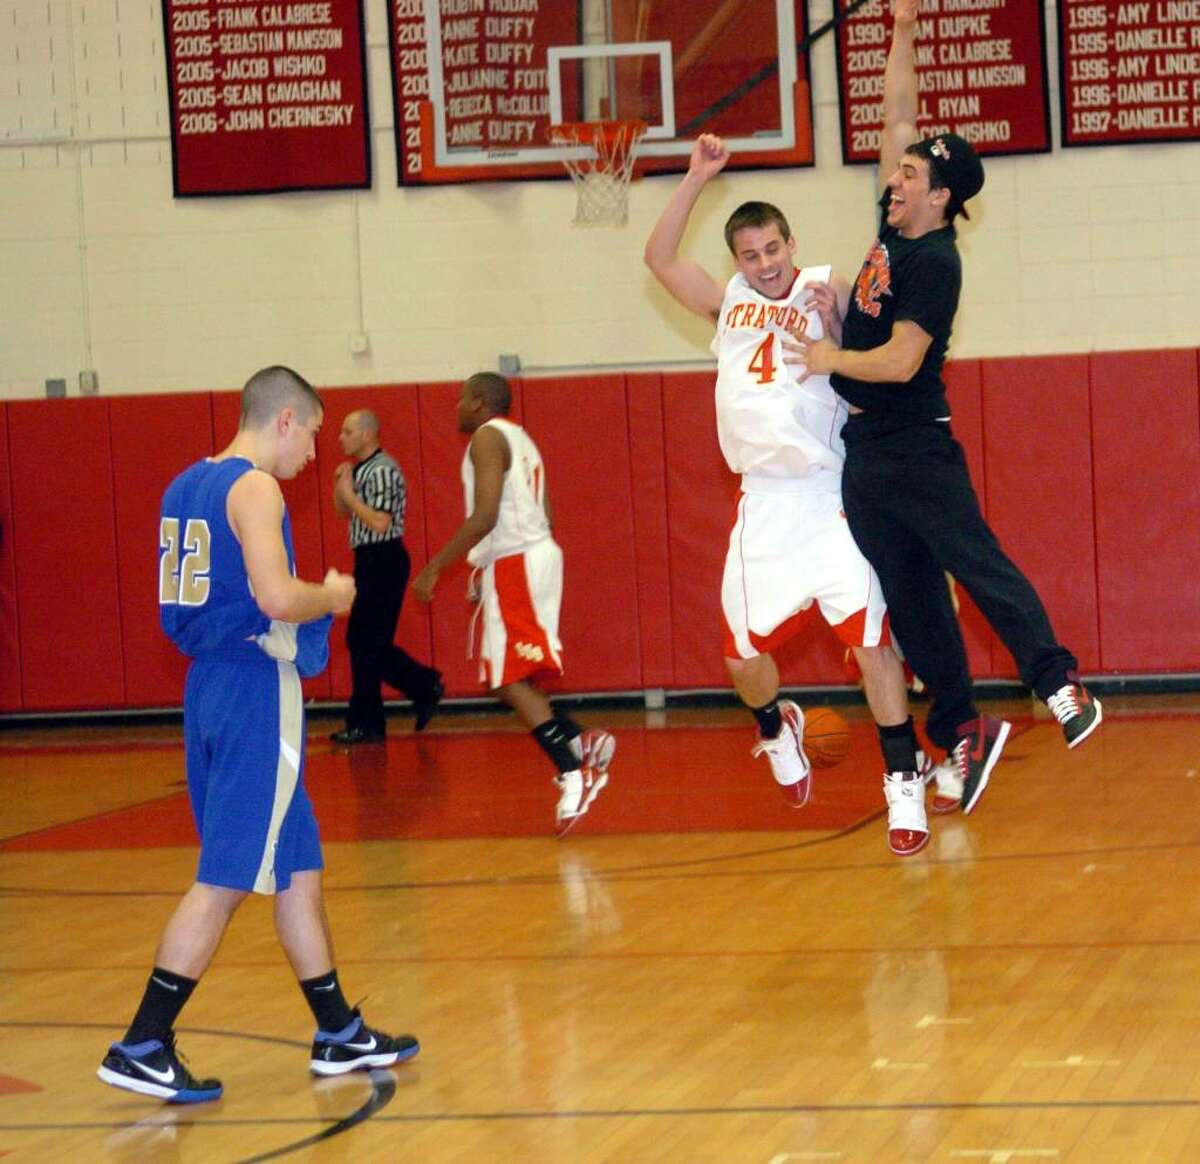 Stratford's #4 Jeff Miller leaps in the air with student Vinny Valente, after the team beat Newtown in SWC Championship action in Monroe on Thursday March 04, 2010.